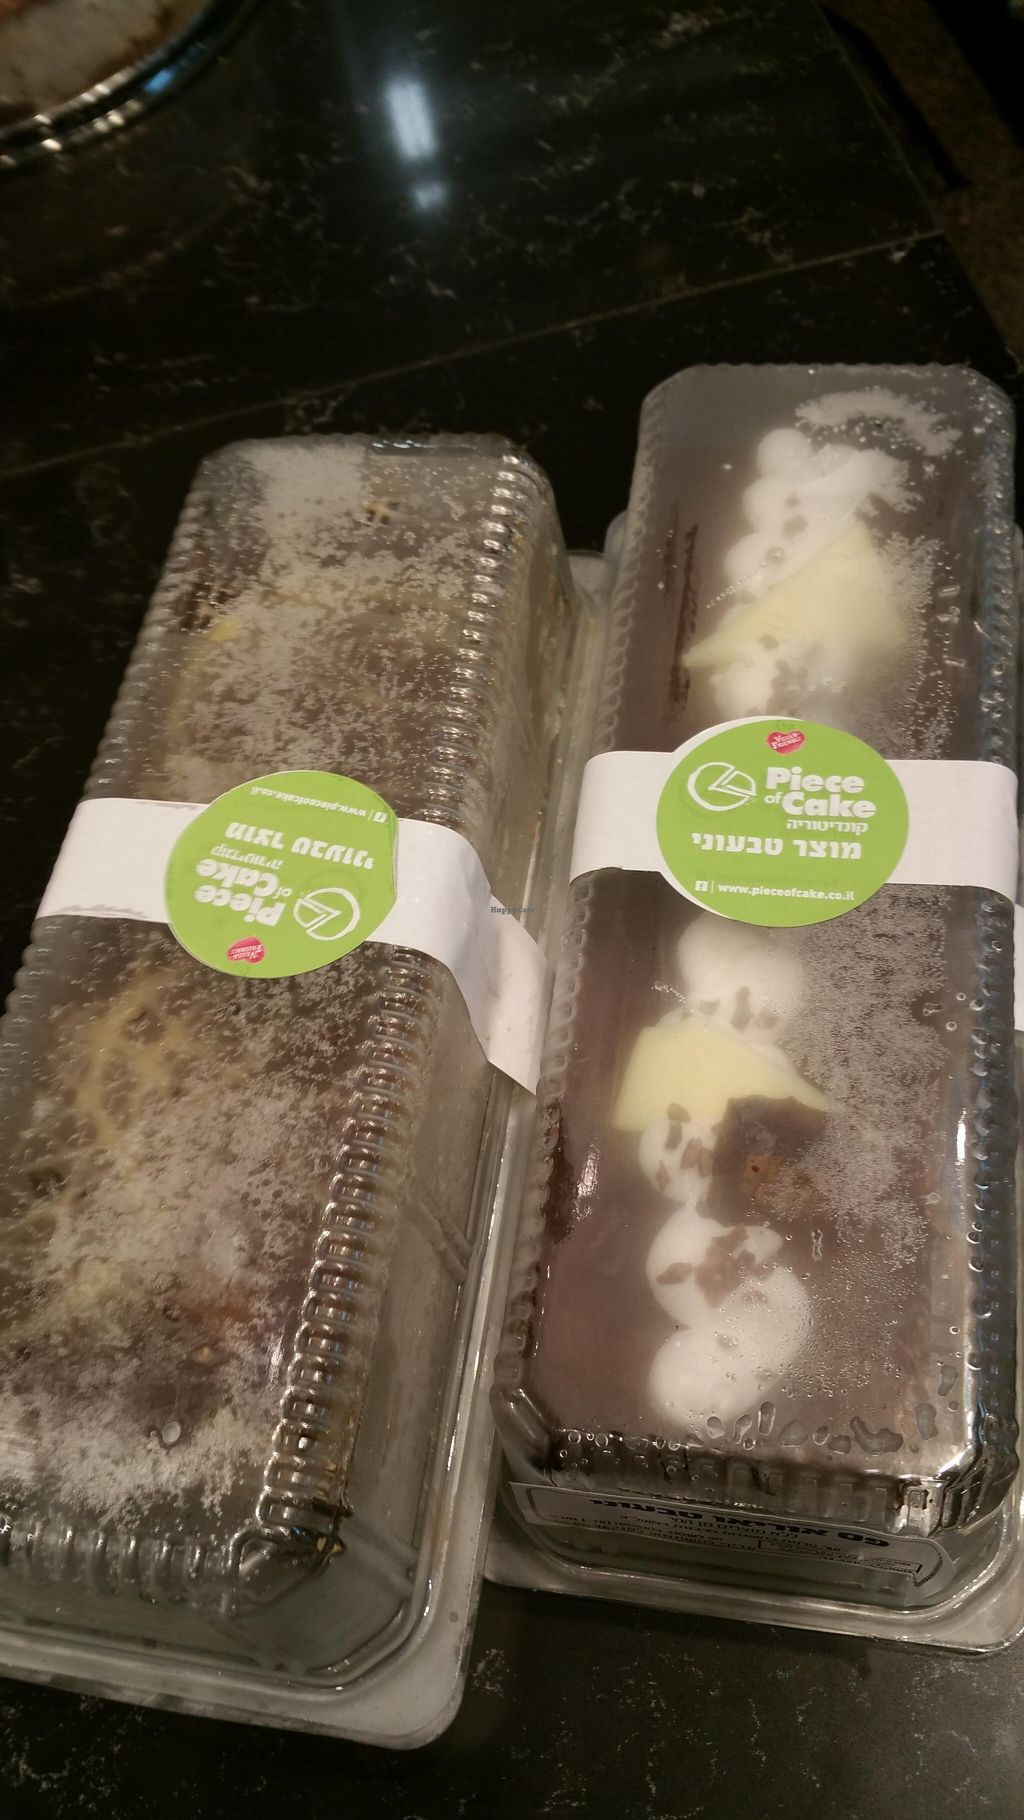 """Photo of CLOSED: Piece of Cake - Ibn Gavirol  by <a href=""""/members/profile/Brok%20O.%20Lee"""">Brok O. Lee</a> <br/>Vegan cakes <br/> December 27, 2015  - <a href='/contact/abuse/image/65133/129979'>Report</a>"""